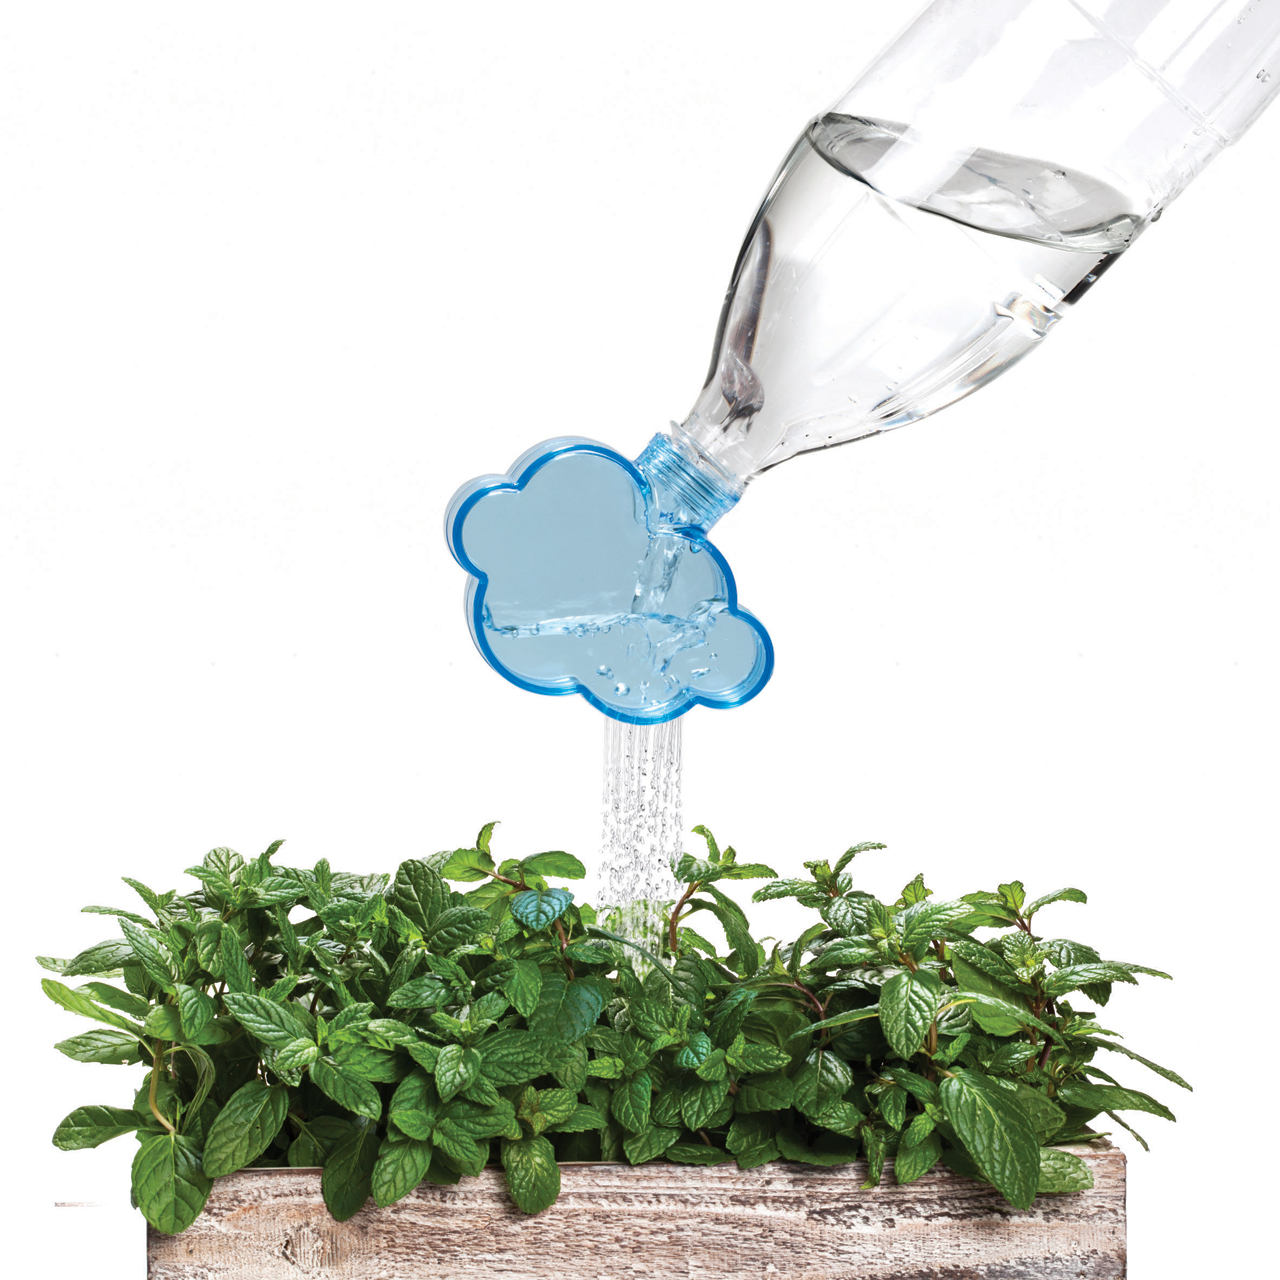 Rainmaker: A Plant Watering Cloud